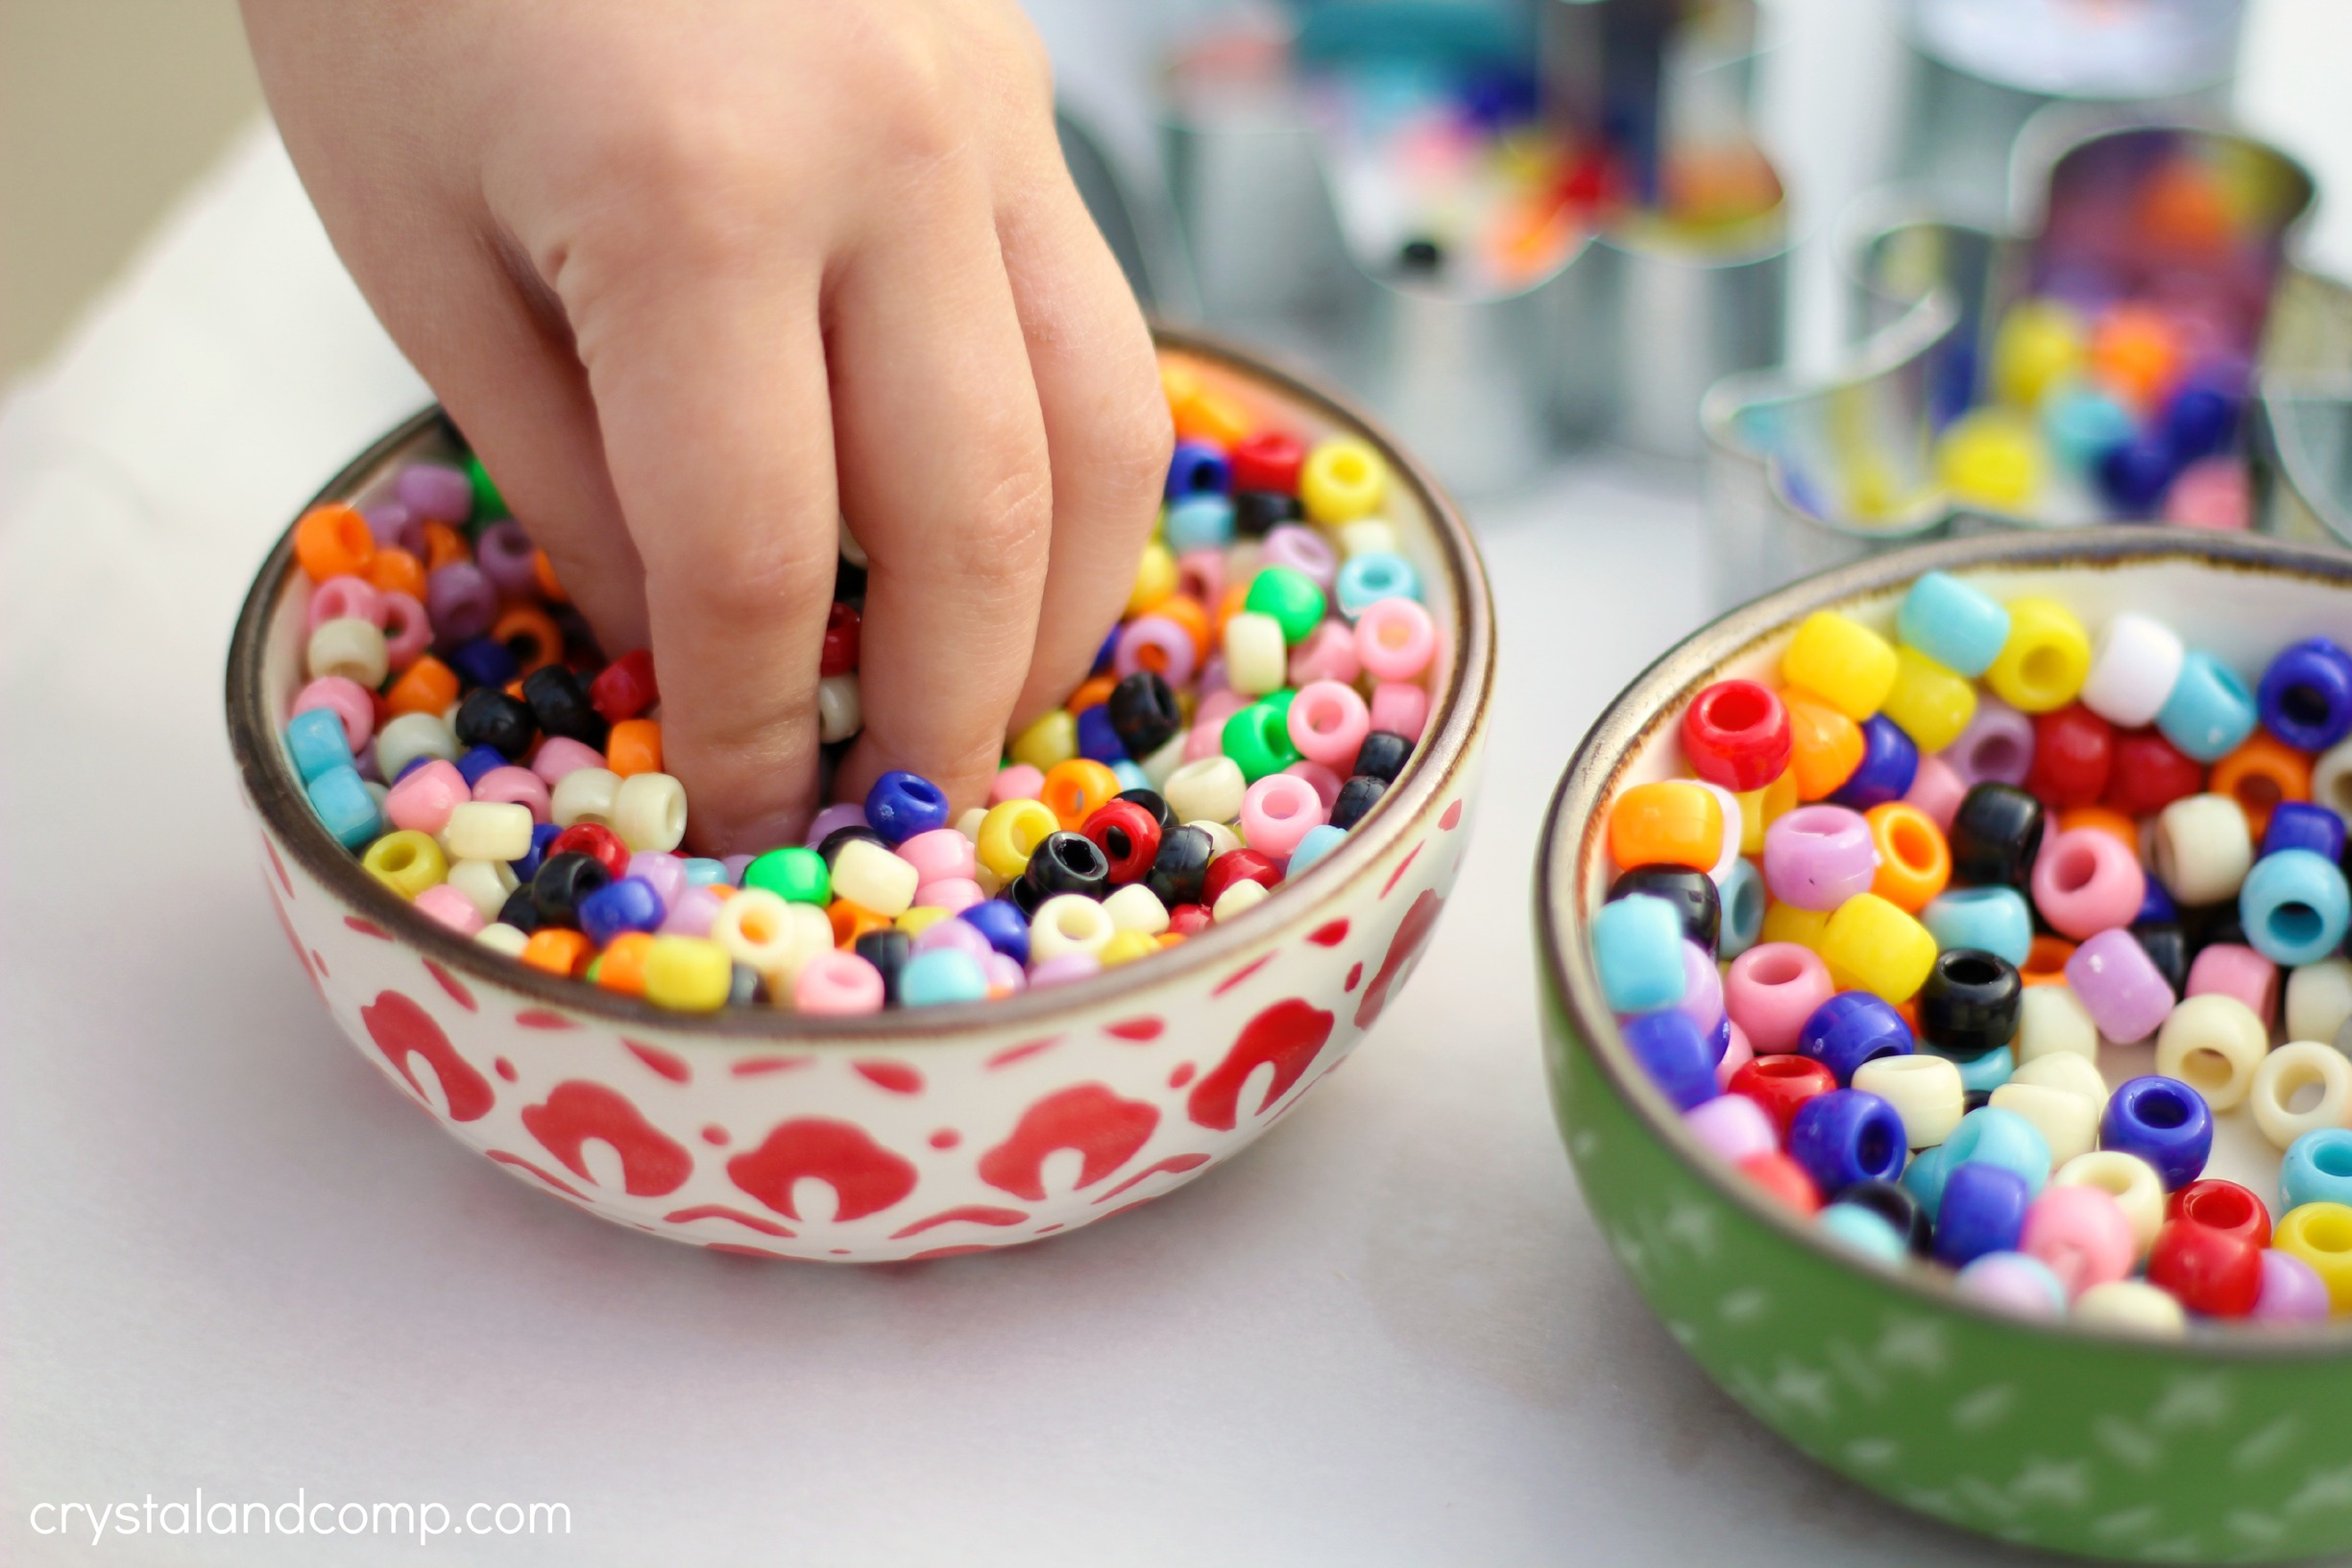 Christmas homemade decorations for kids - Homemade Ornaments Kids Can Make